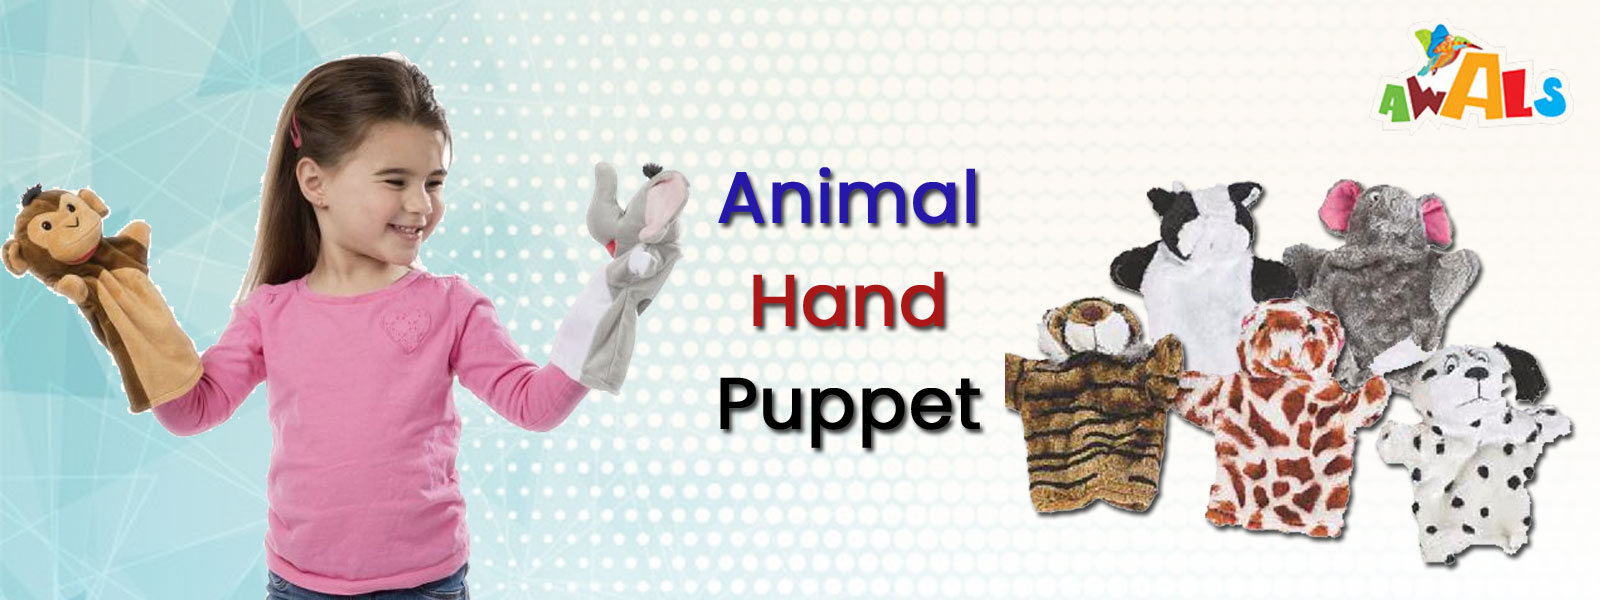 Animal Hand Puppet Manufacturers